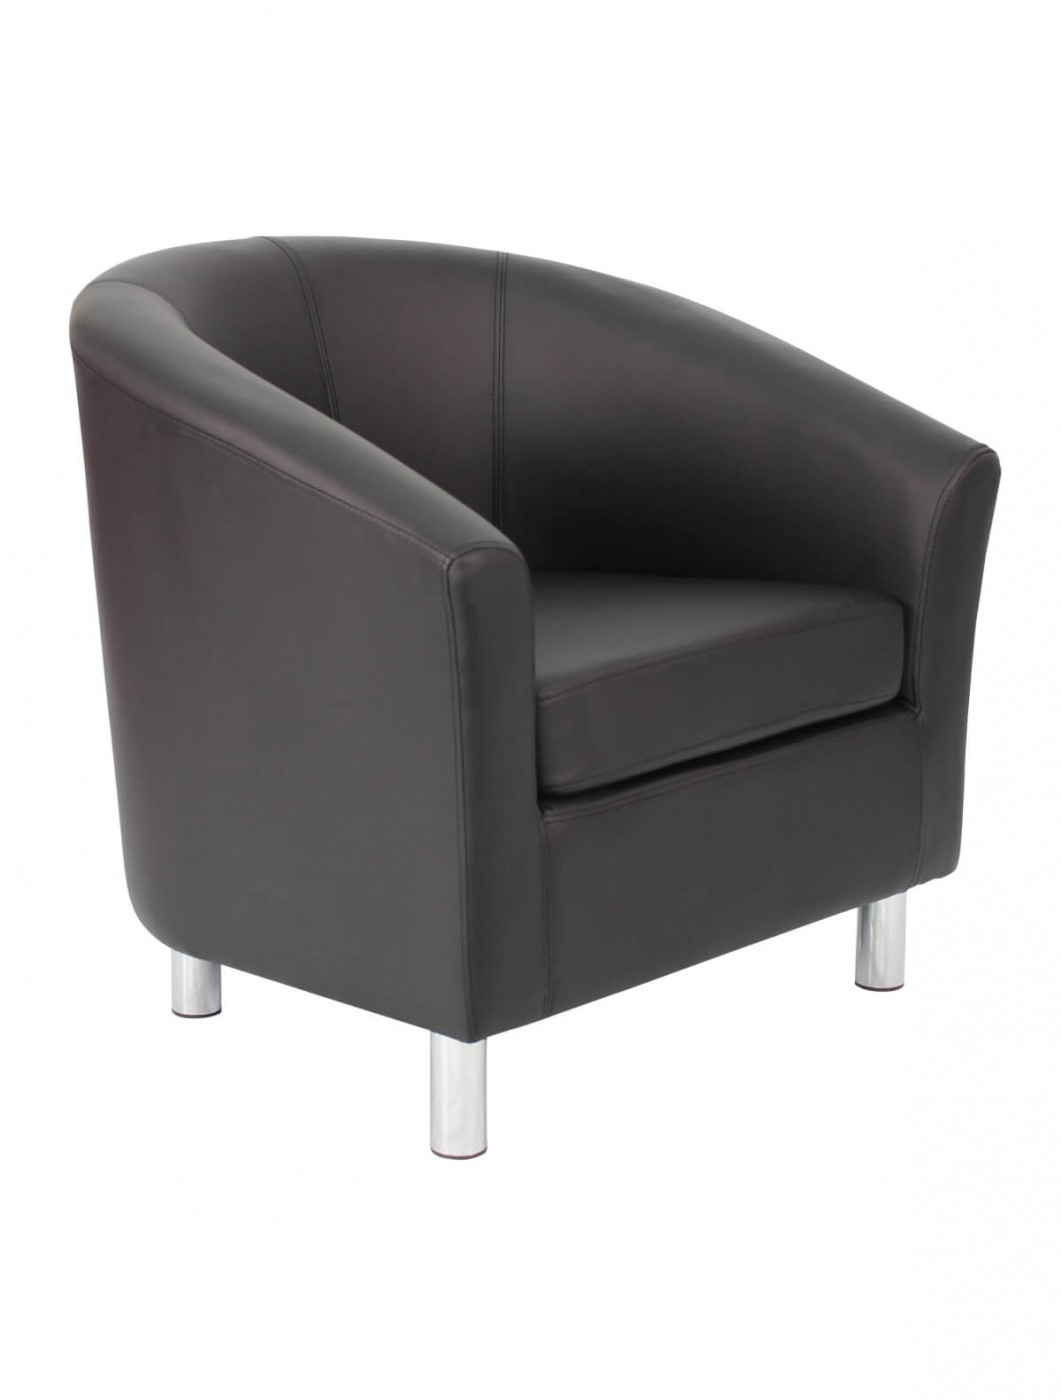 Armchair - PU Leather Tub Chair OF5ML Reception Chairs